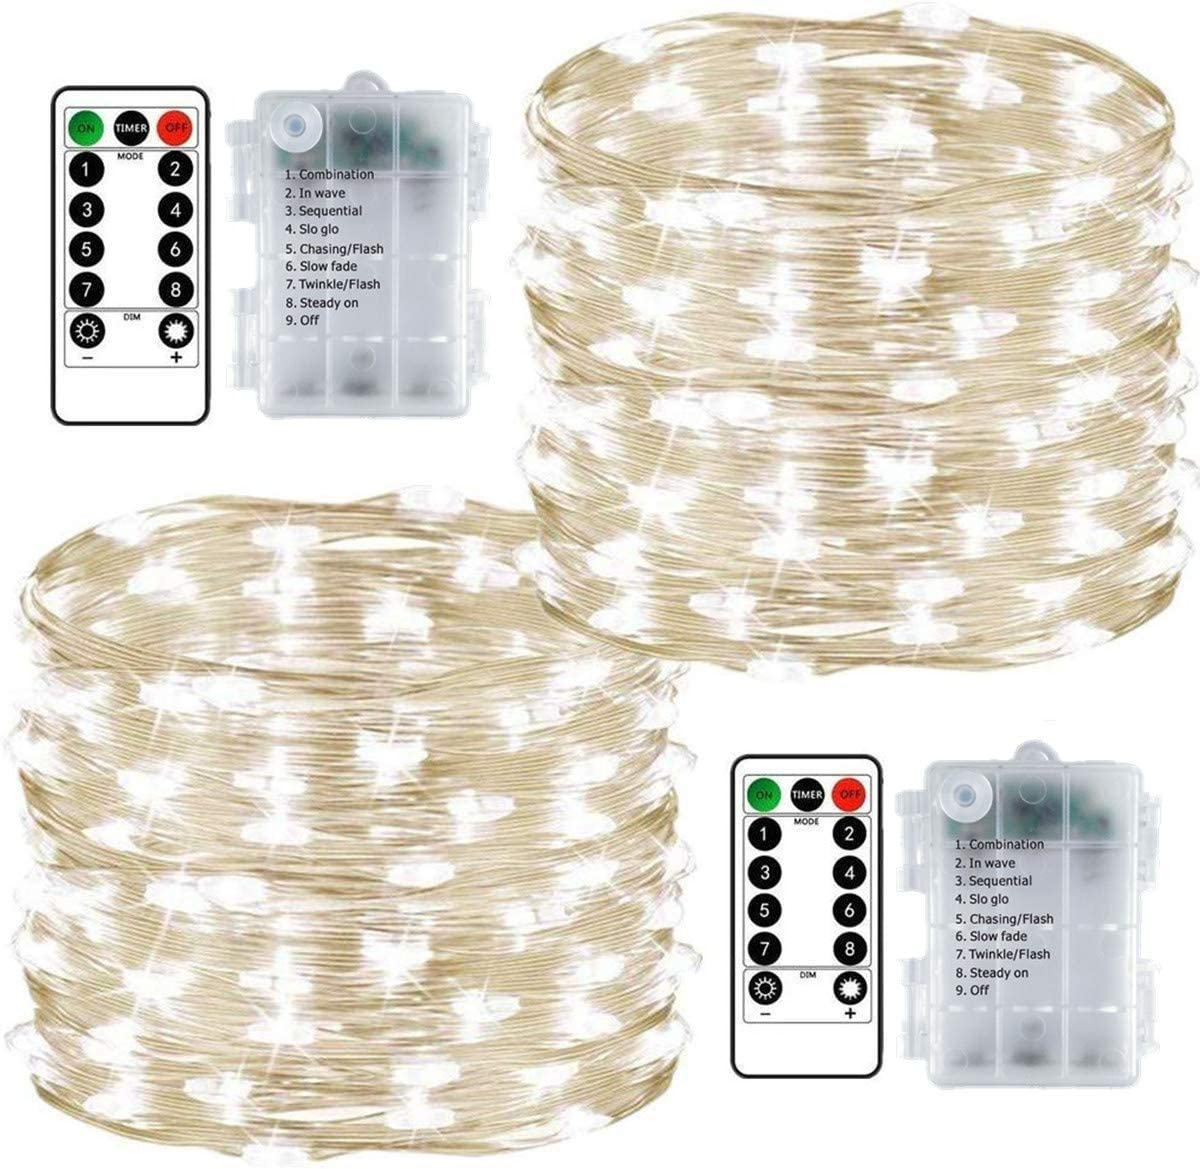 8 Lighting Modes Wireless 50 LED Fairy Lights for Indoor//Outdoor Use Christmas